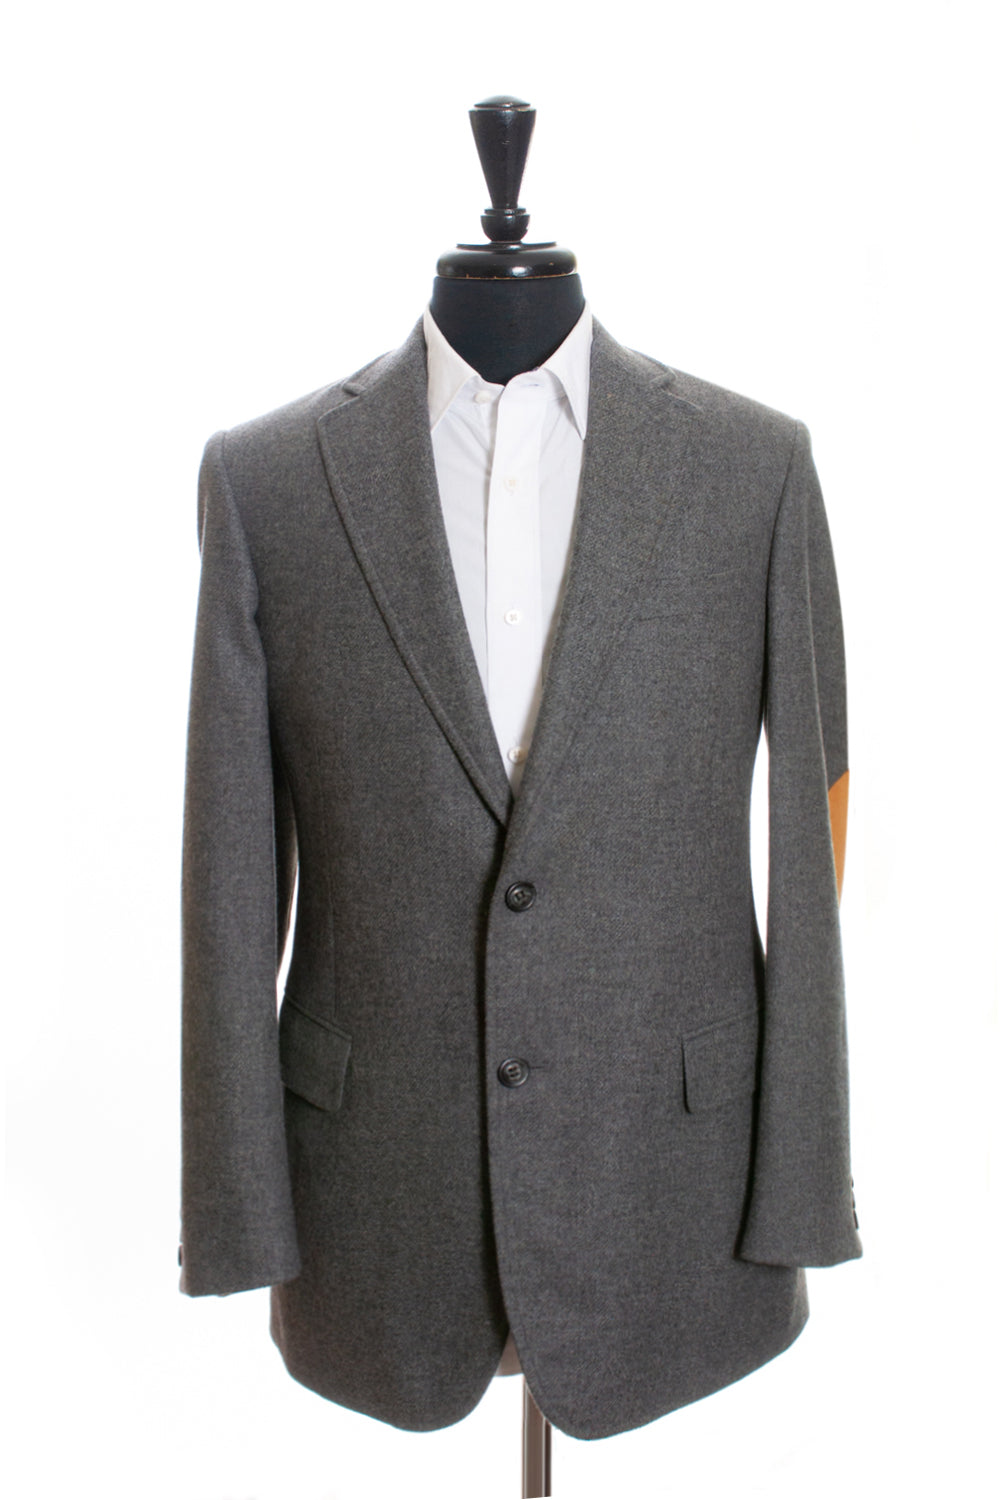 Faconnable Grey Cashmere Blend Tweed Blazer